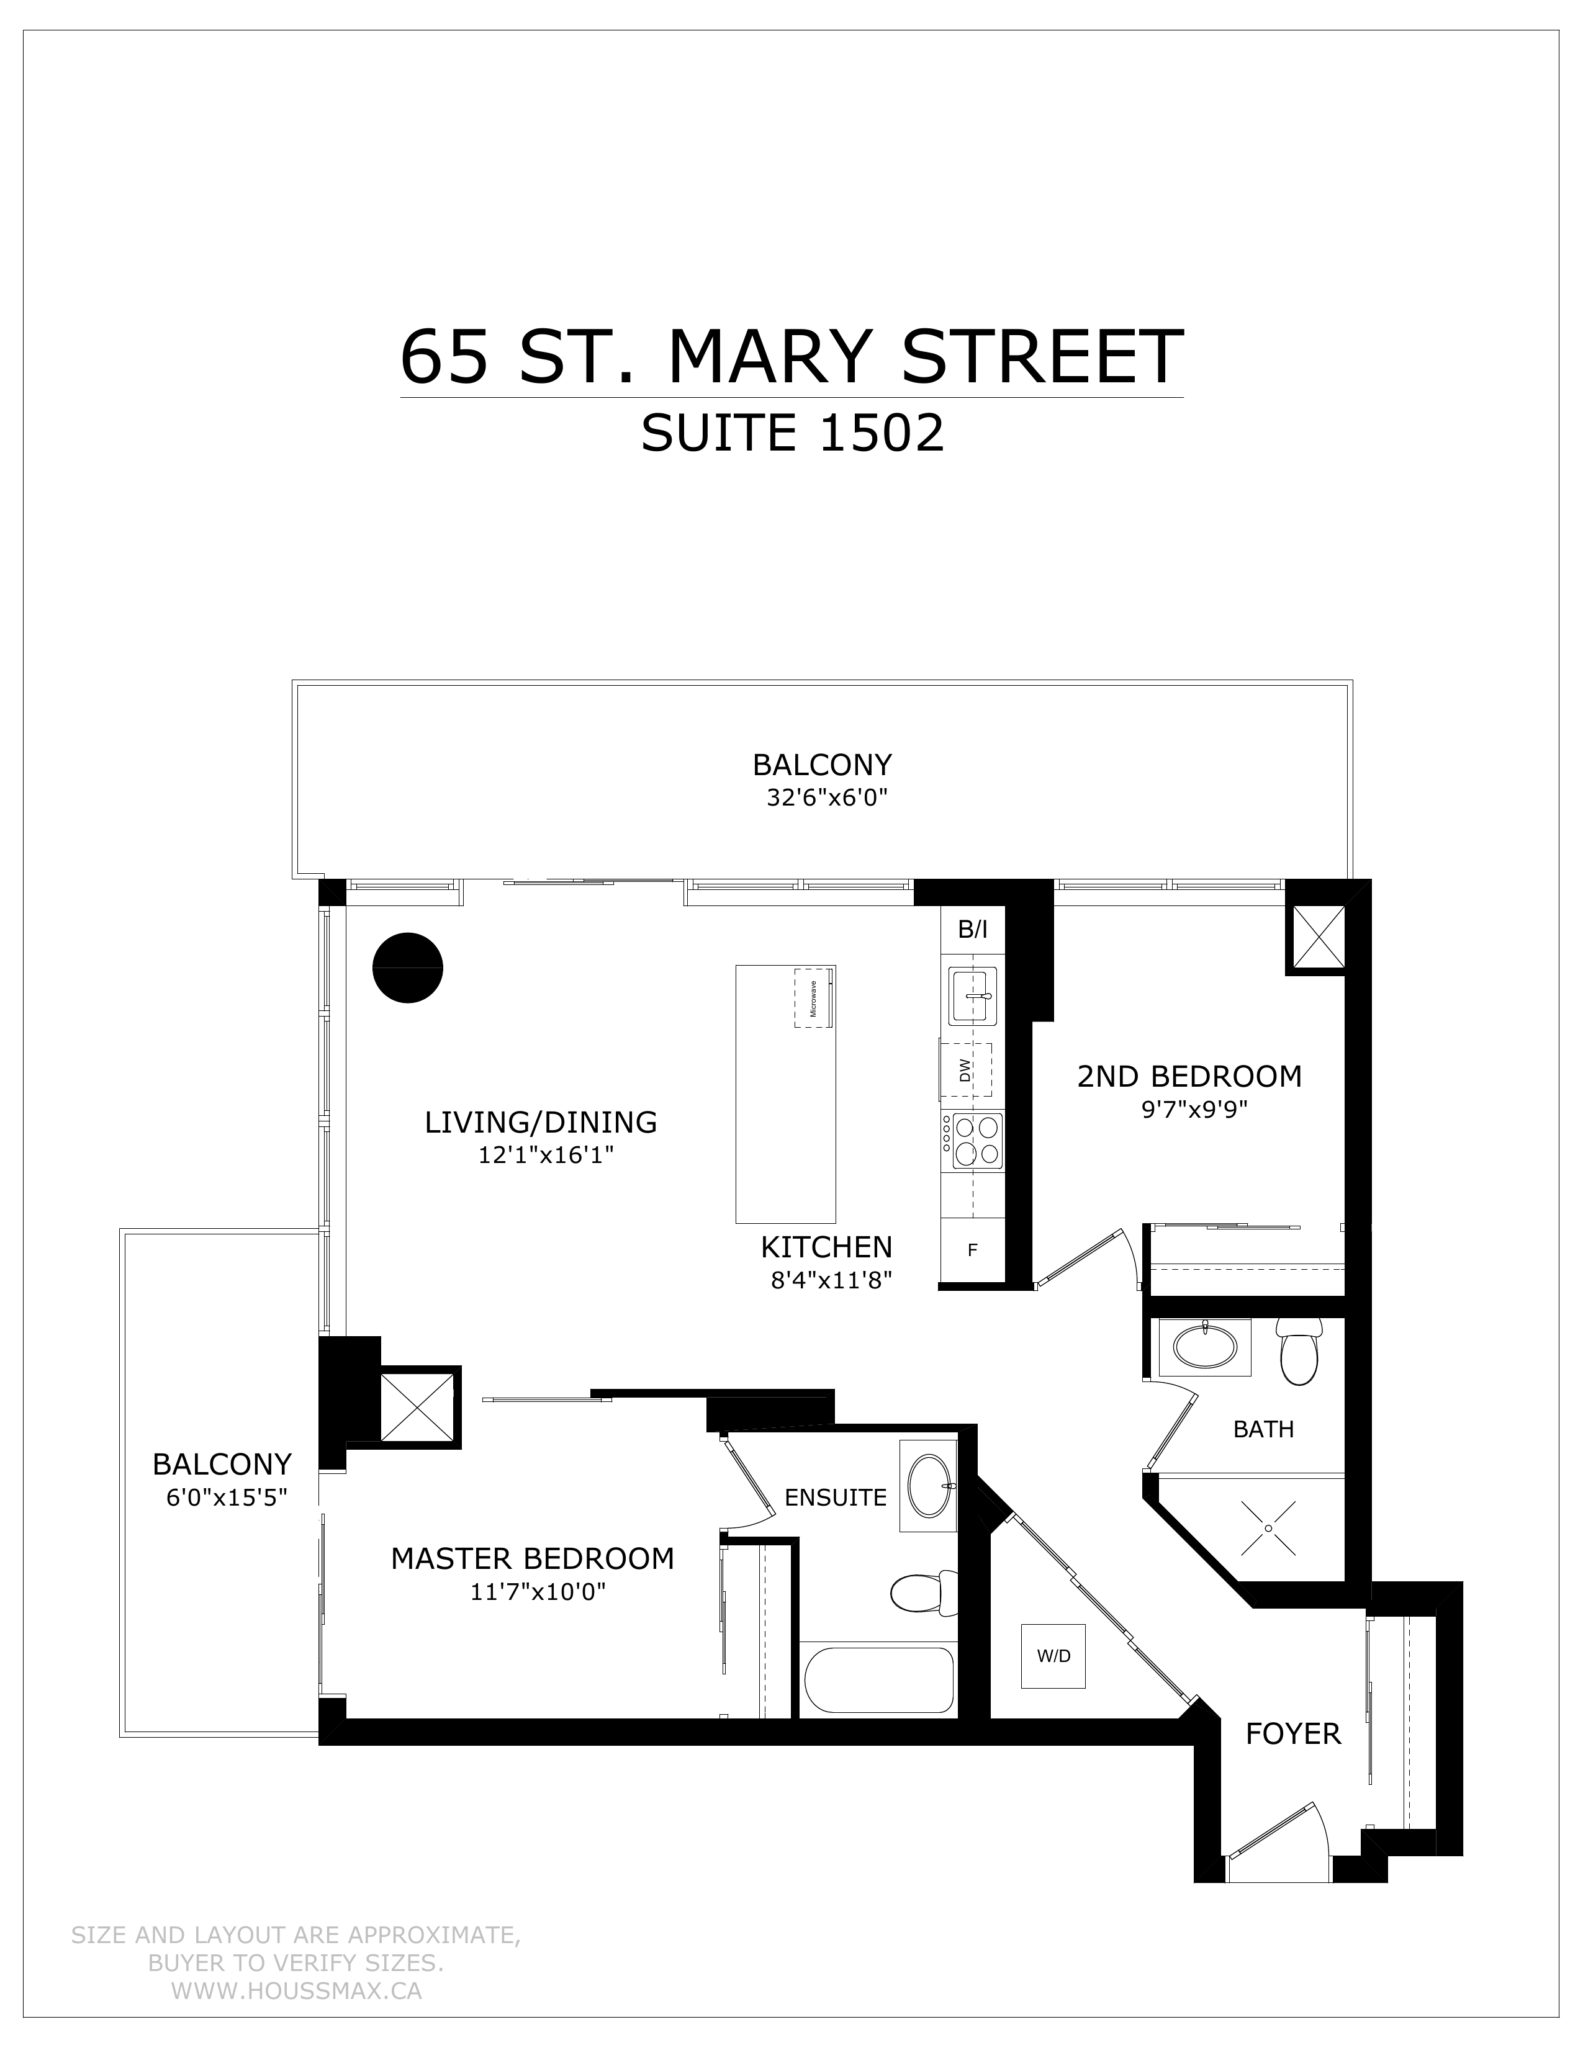 Floor Plans for 65 St Mary Street Unit 1502